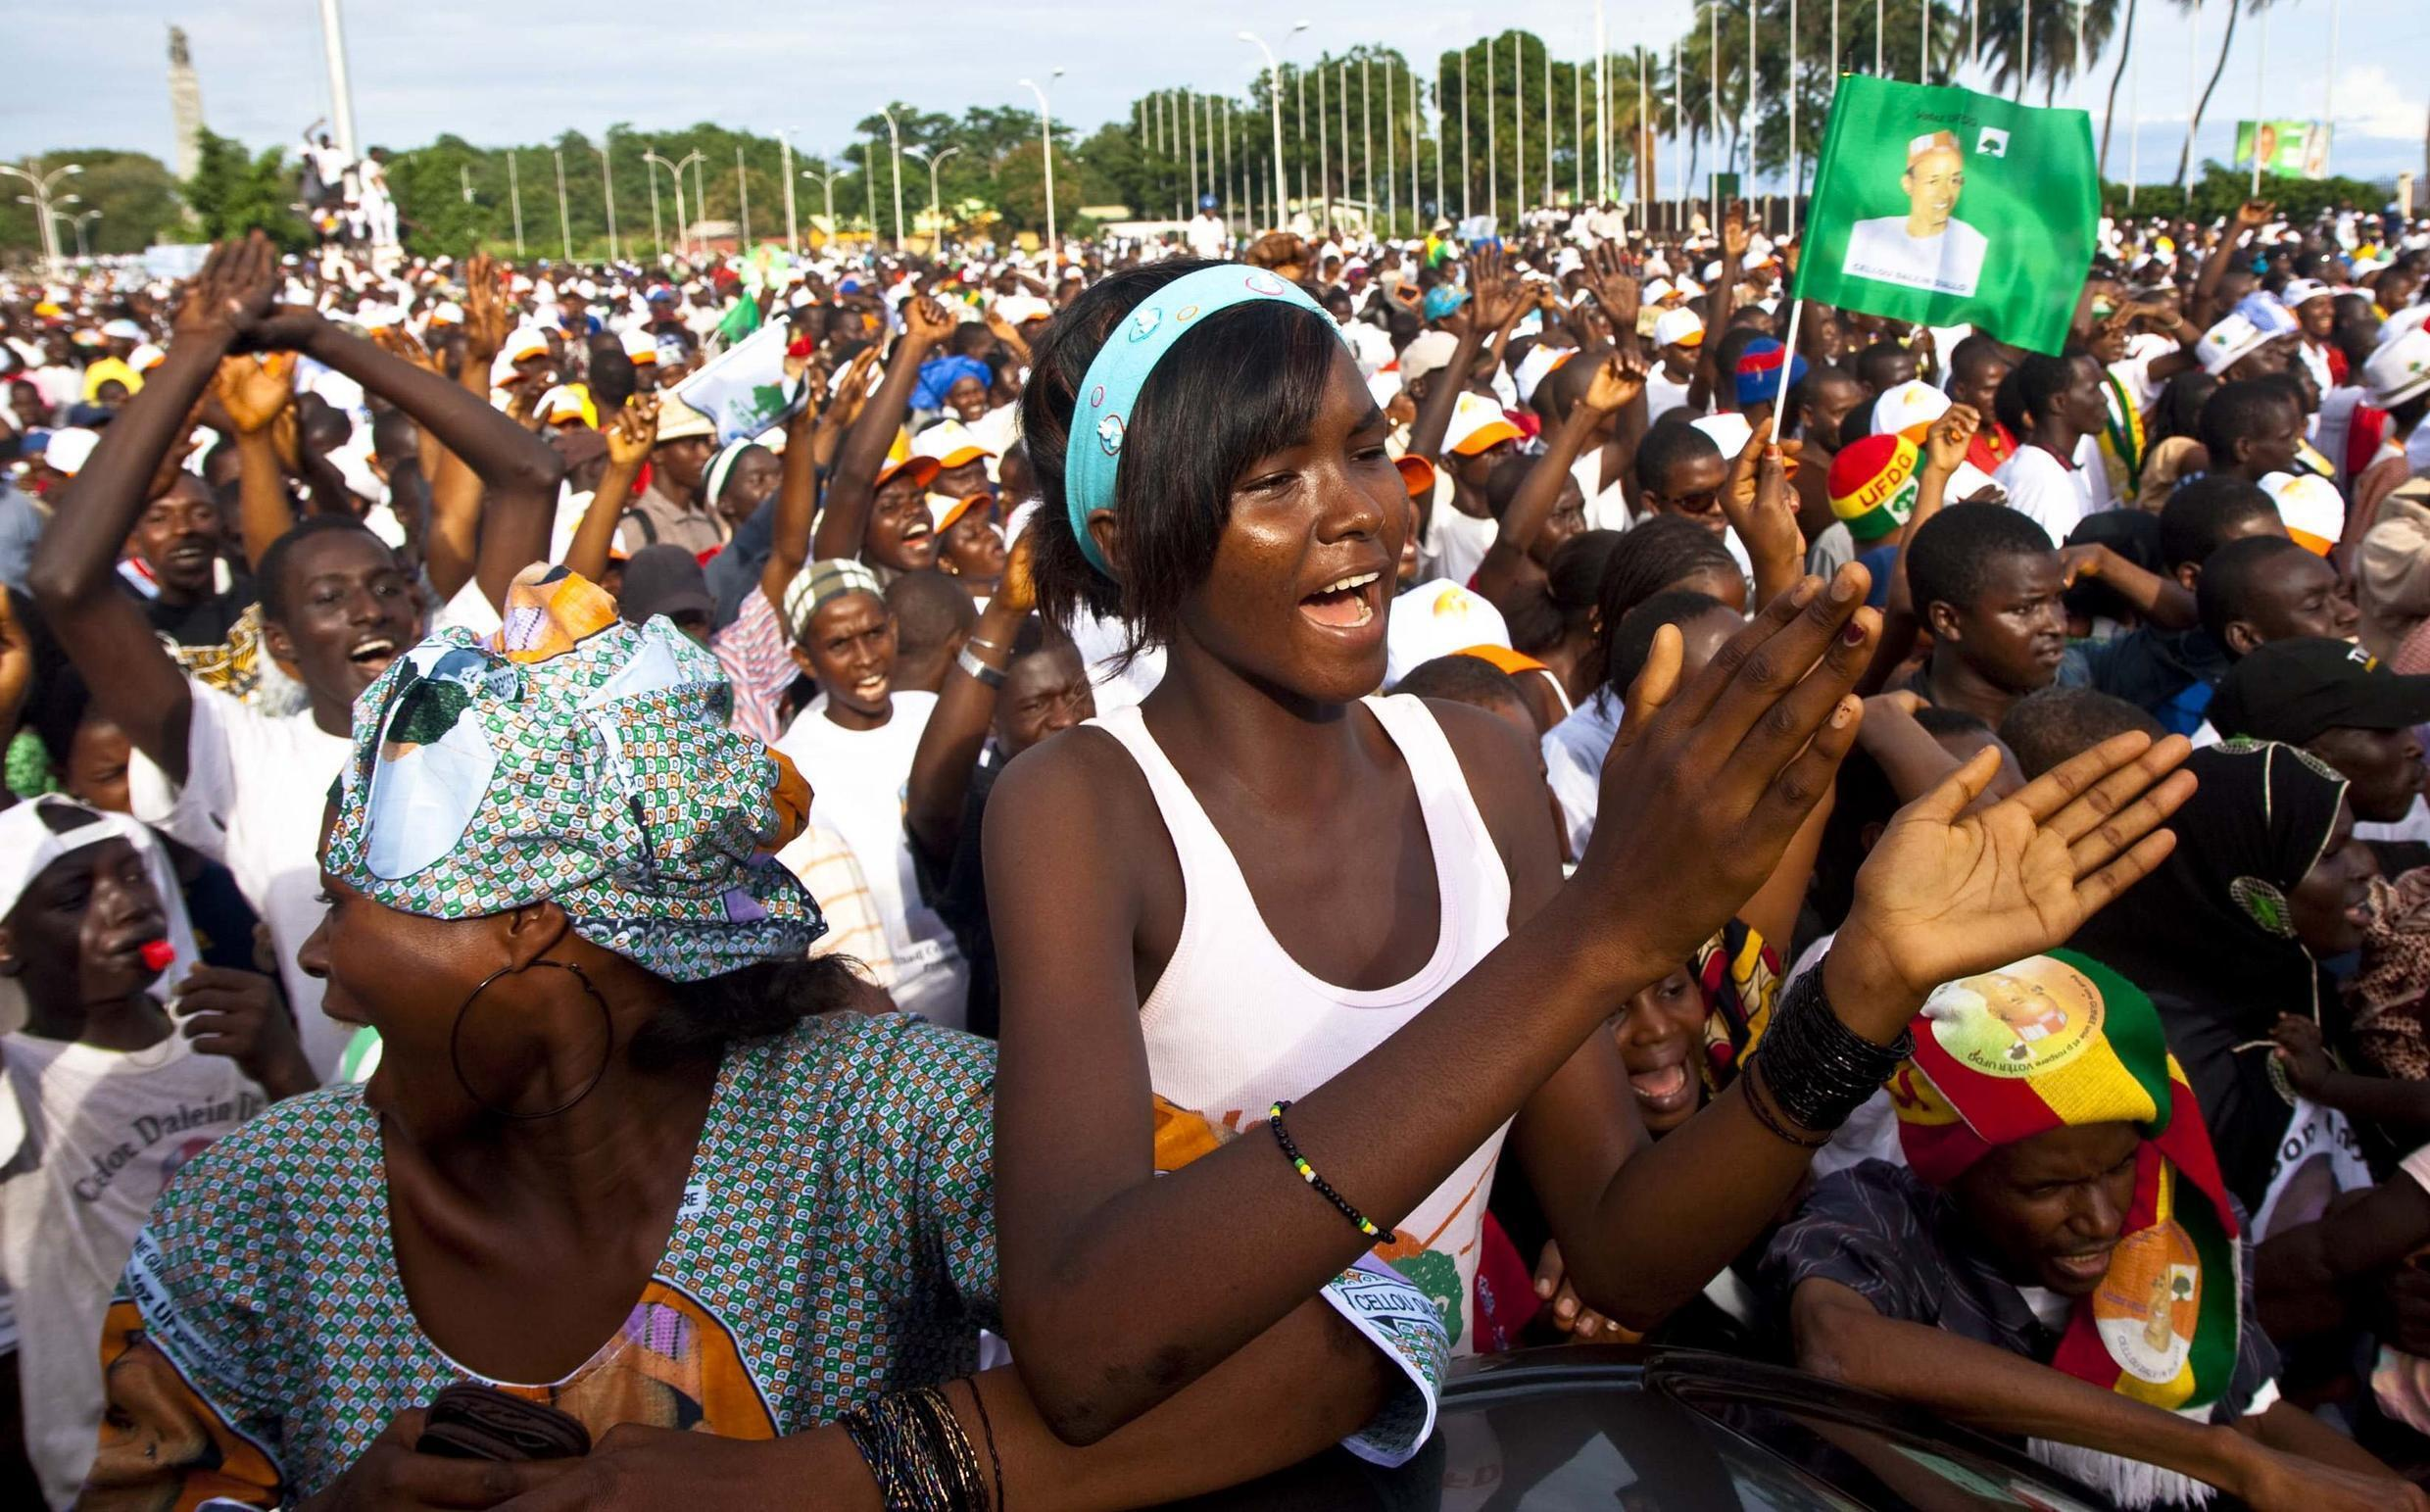 Supporters of the Union for the Democratic Forces of Guinea (UFDG) attend a presidential campaign rally in the capital Conakry